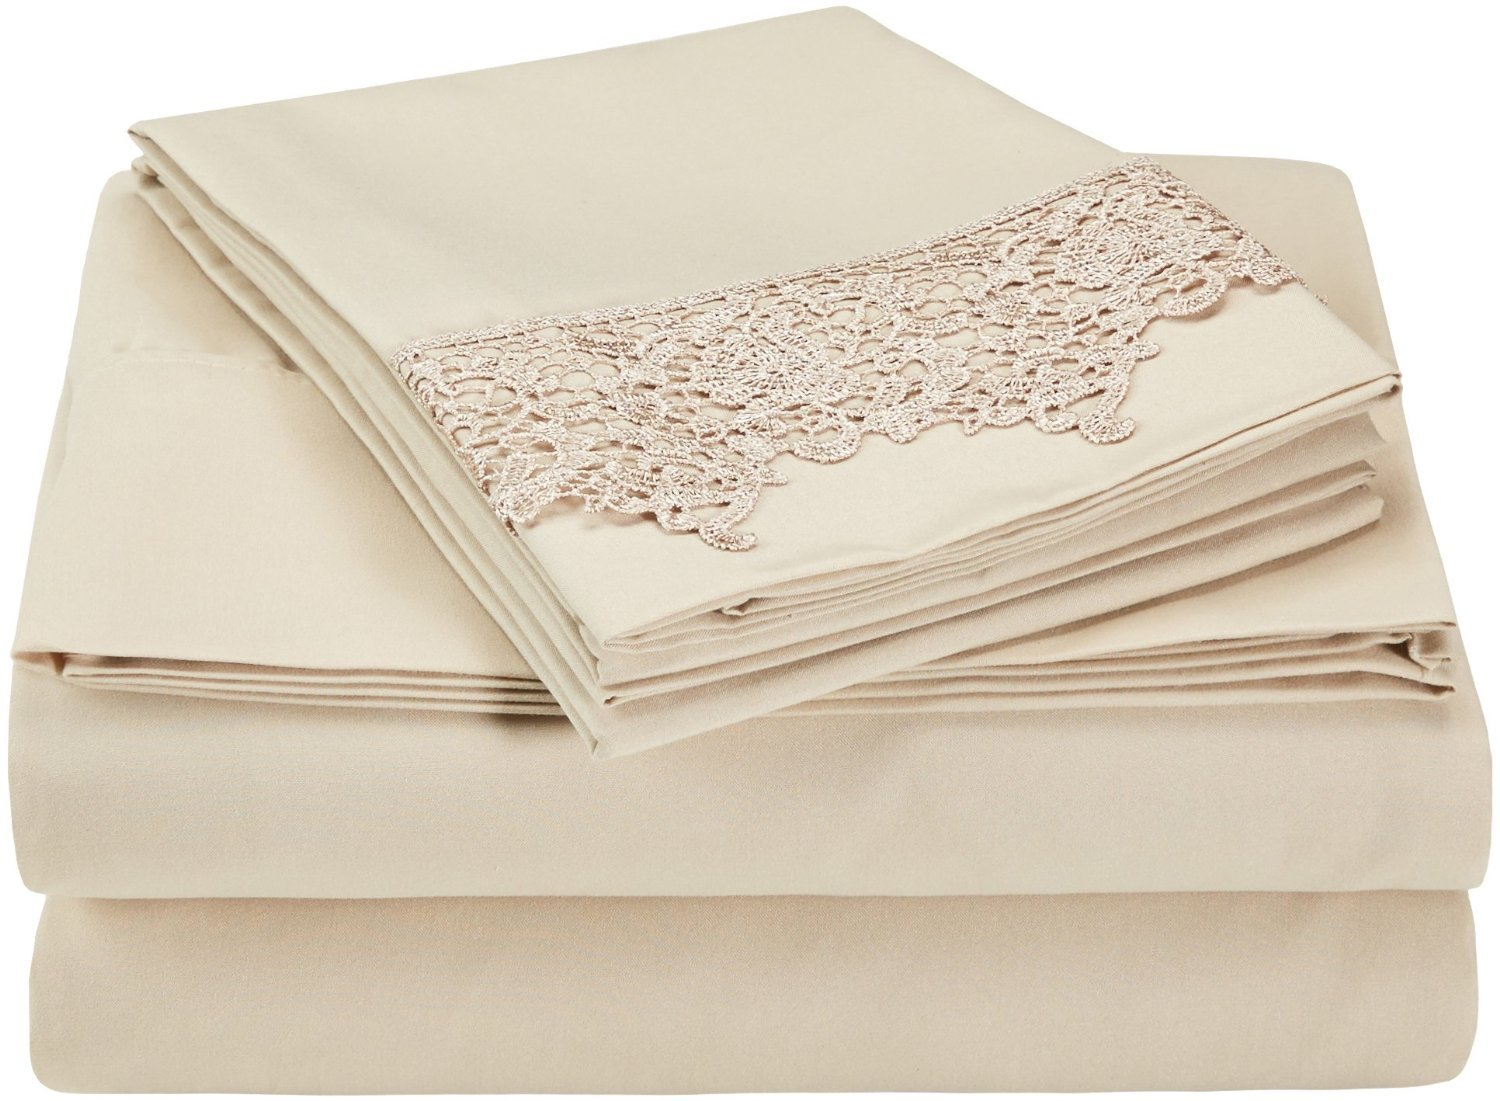 (Twin/Twin XL, Ivory/Ivory) LUXOR TREASURES Super Soft Light Weight, 100% Brushed Microfiber, Twin/Twin XL, Wrinkle Resistant, Ivory Duvet Set with Regal Lace Pillowshams in Gift Box B00QILXBLA Twin/Twin XL|アイボリー/アイボリー アイボリー/アイボリー Twin/Twin XL